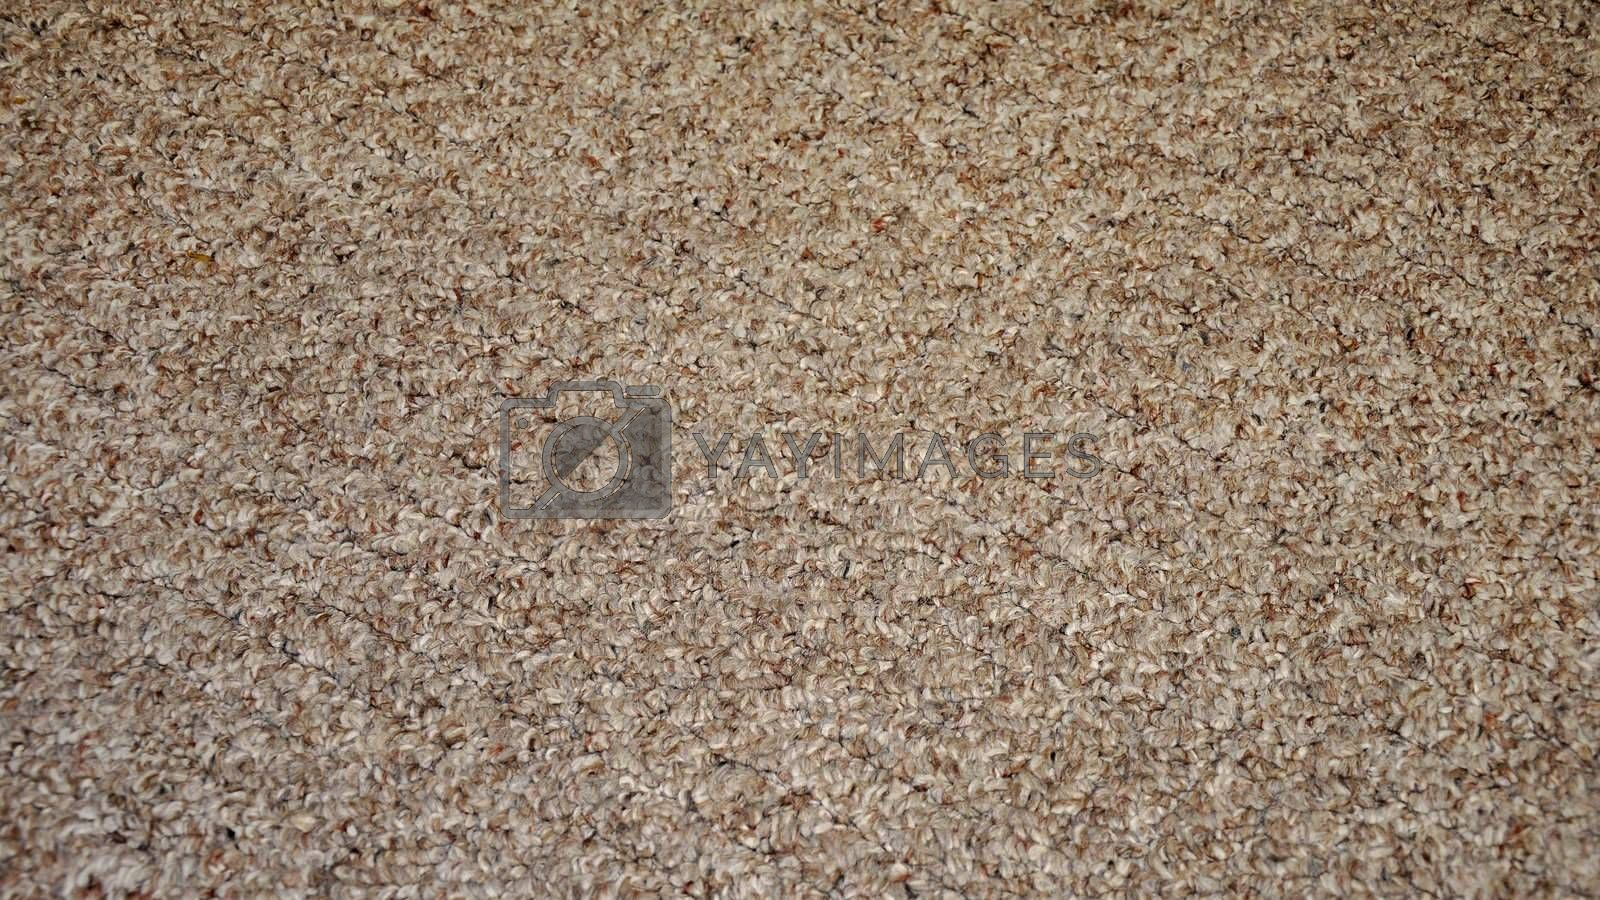 abstract view of a textured brown and tan carpet